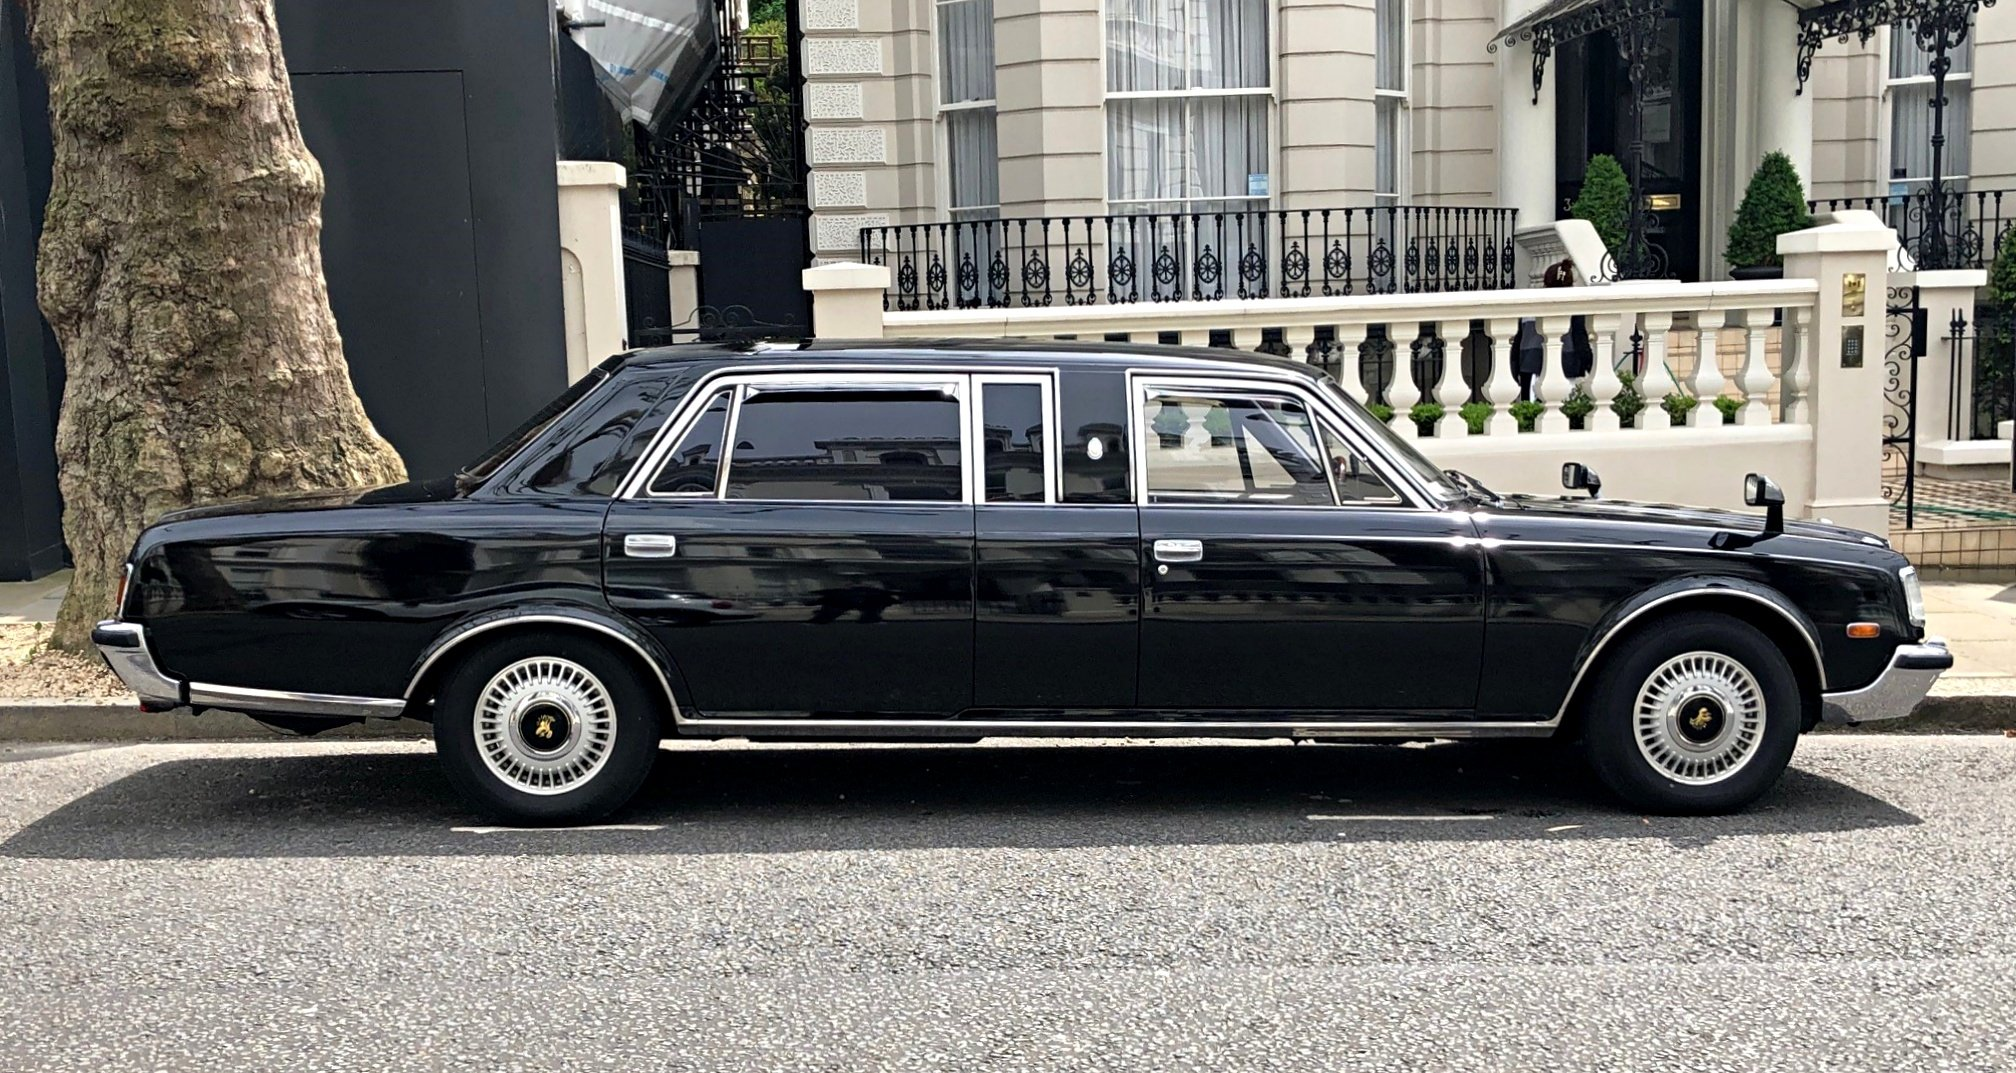 Toyota Century For Sale >> 1994 Classic Toyota Century Limousine For Sale Car And Classic